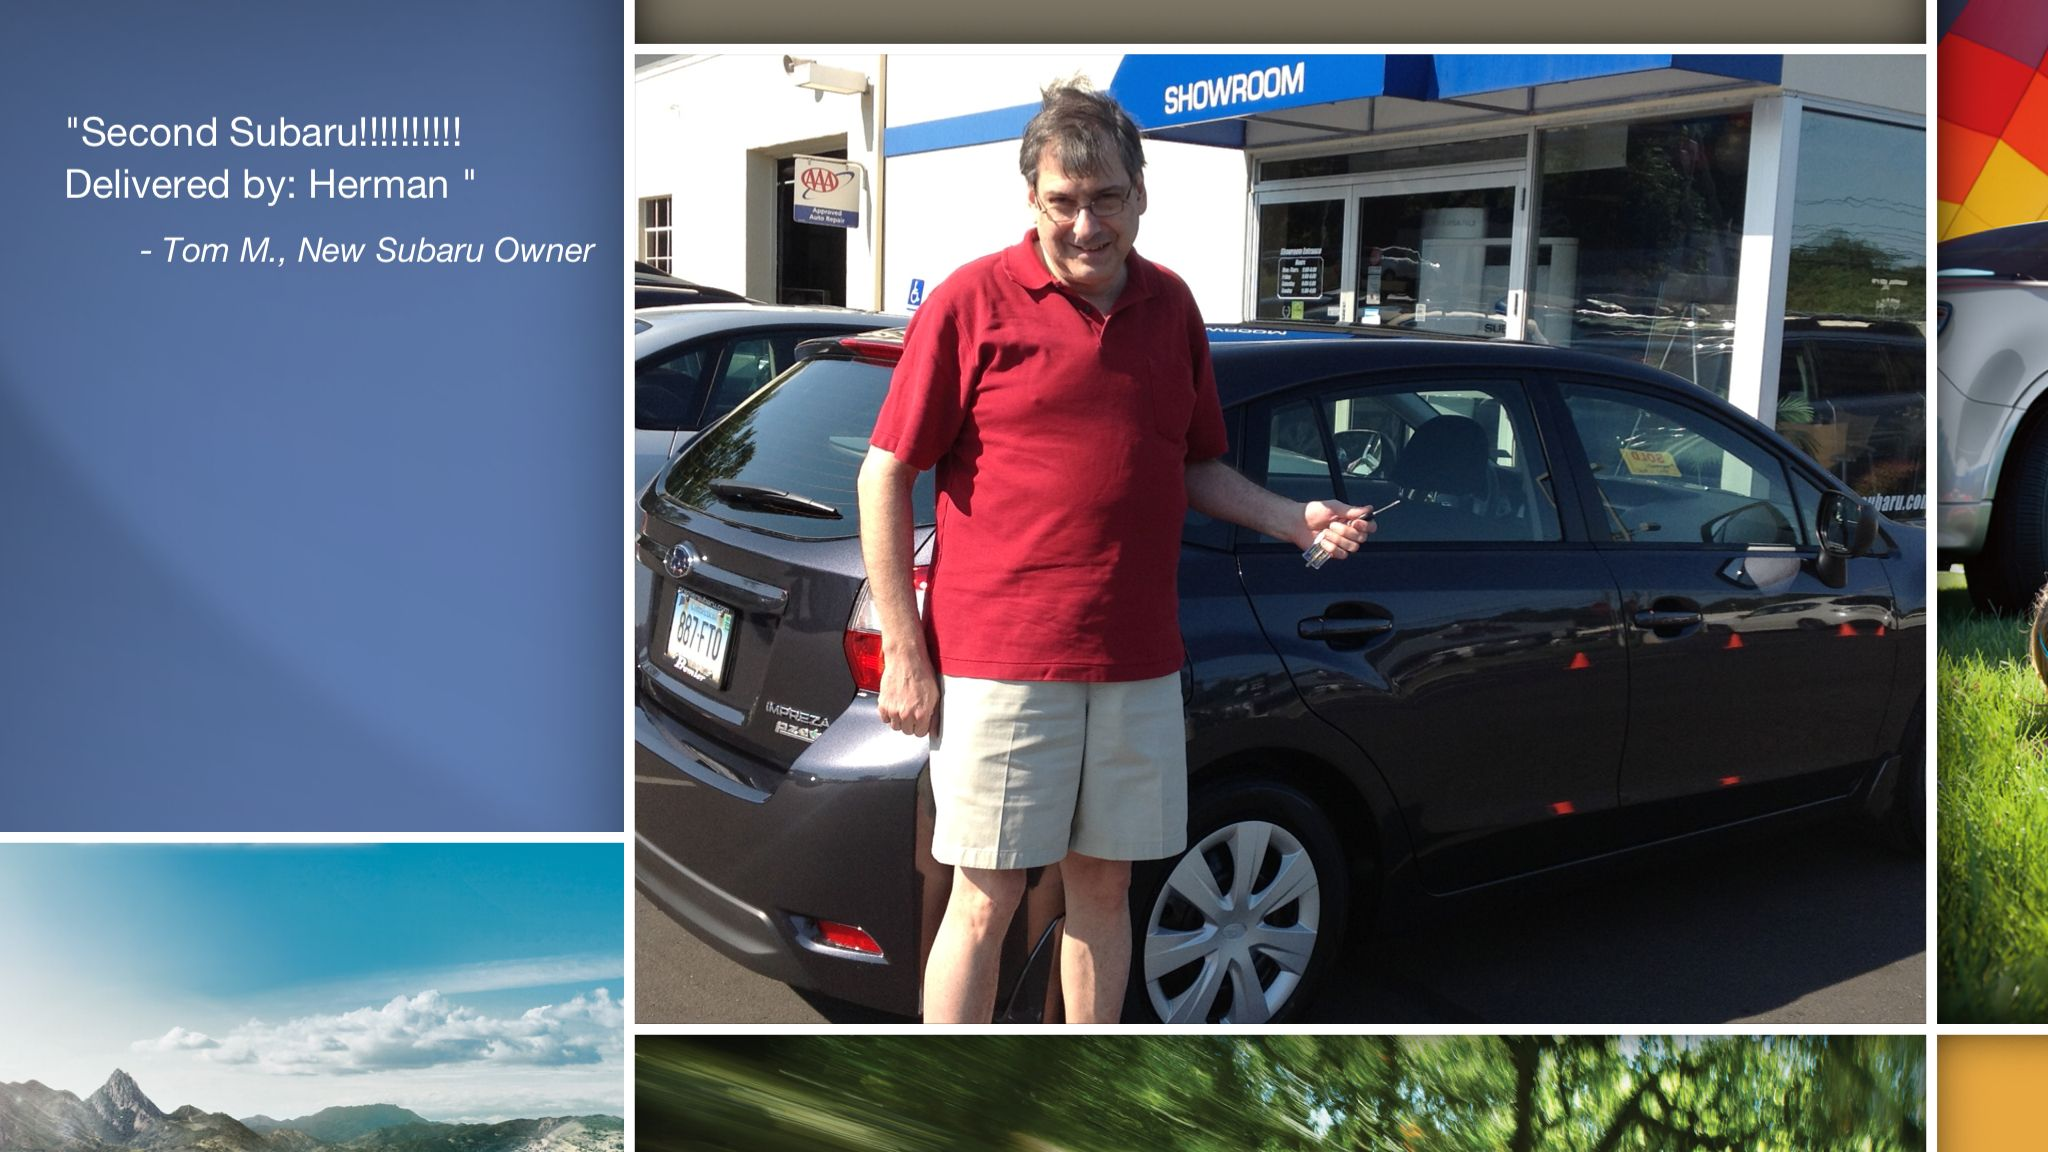 Congratulations Tom Malchodi!  A heartfelt thank you for the purchase of your new Subaru from all of us at Premier Subaru.   We're proud to have you as part of the Subaru Family.